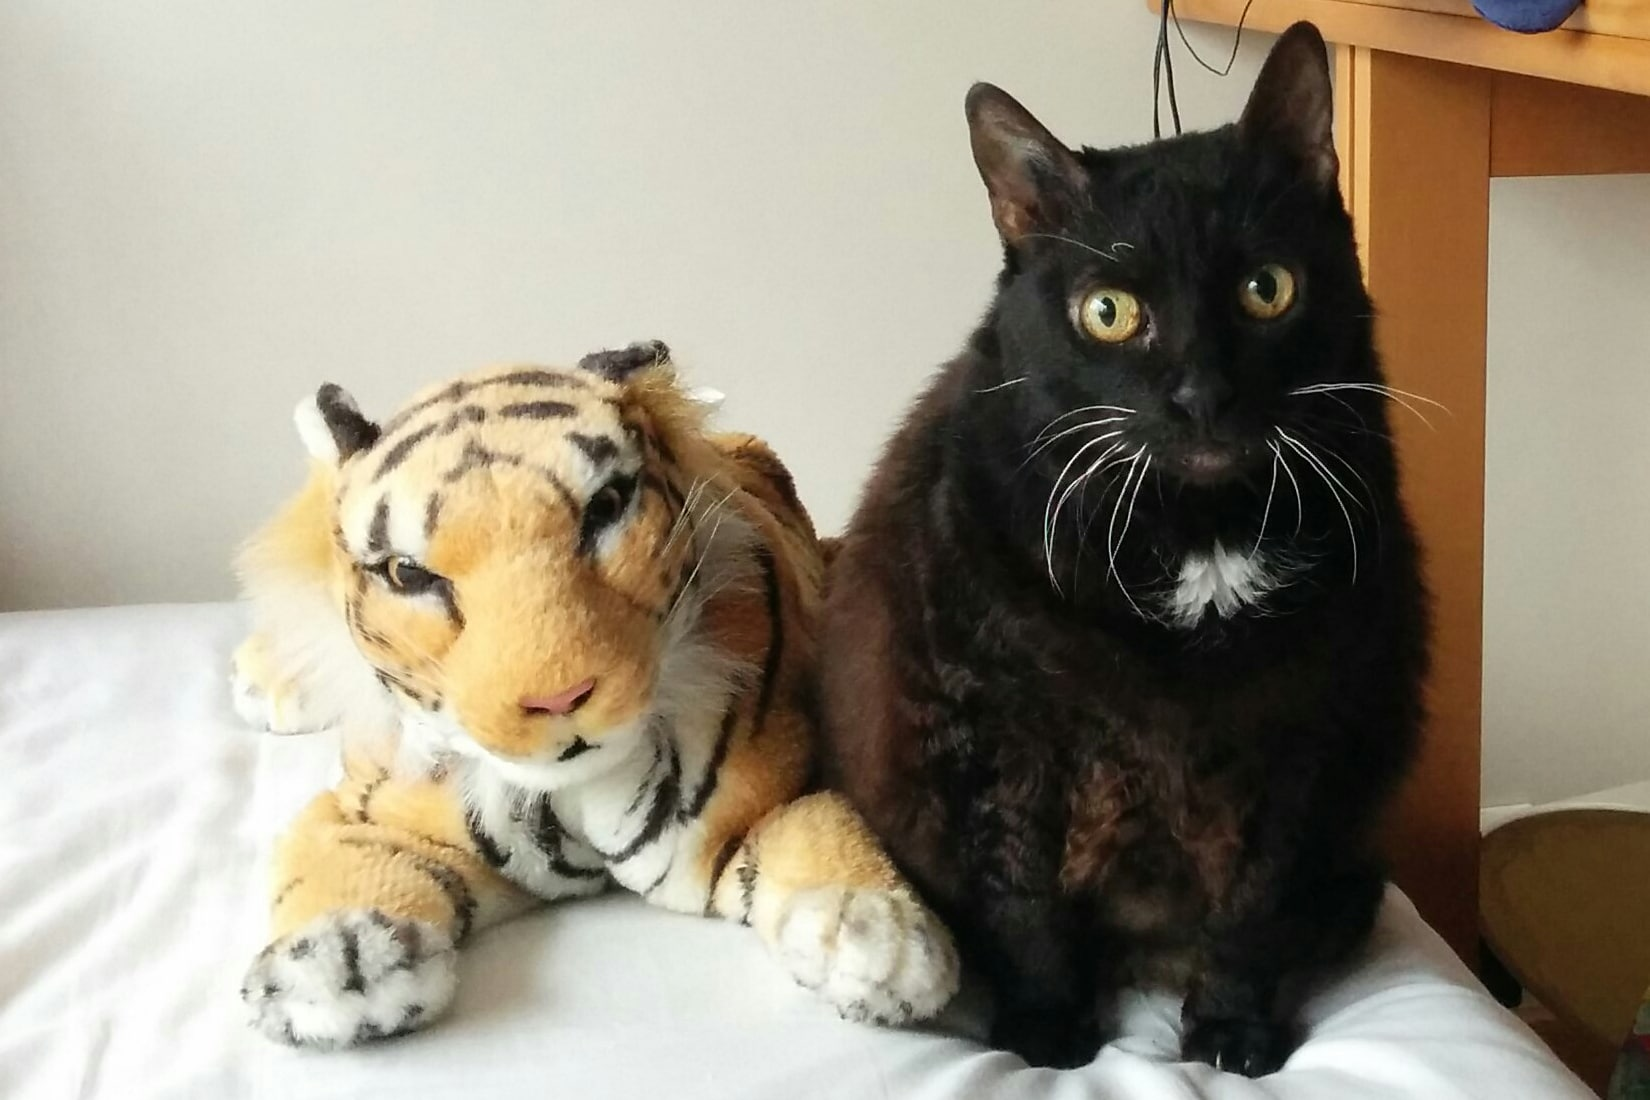 black cat sitting next to a tiger puppet